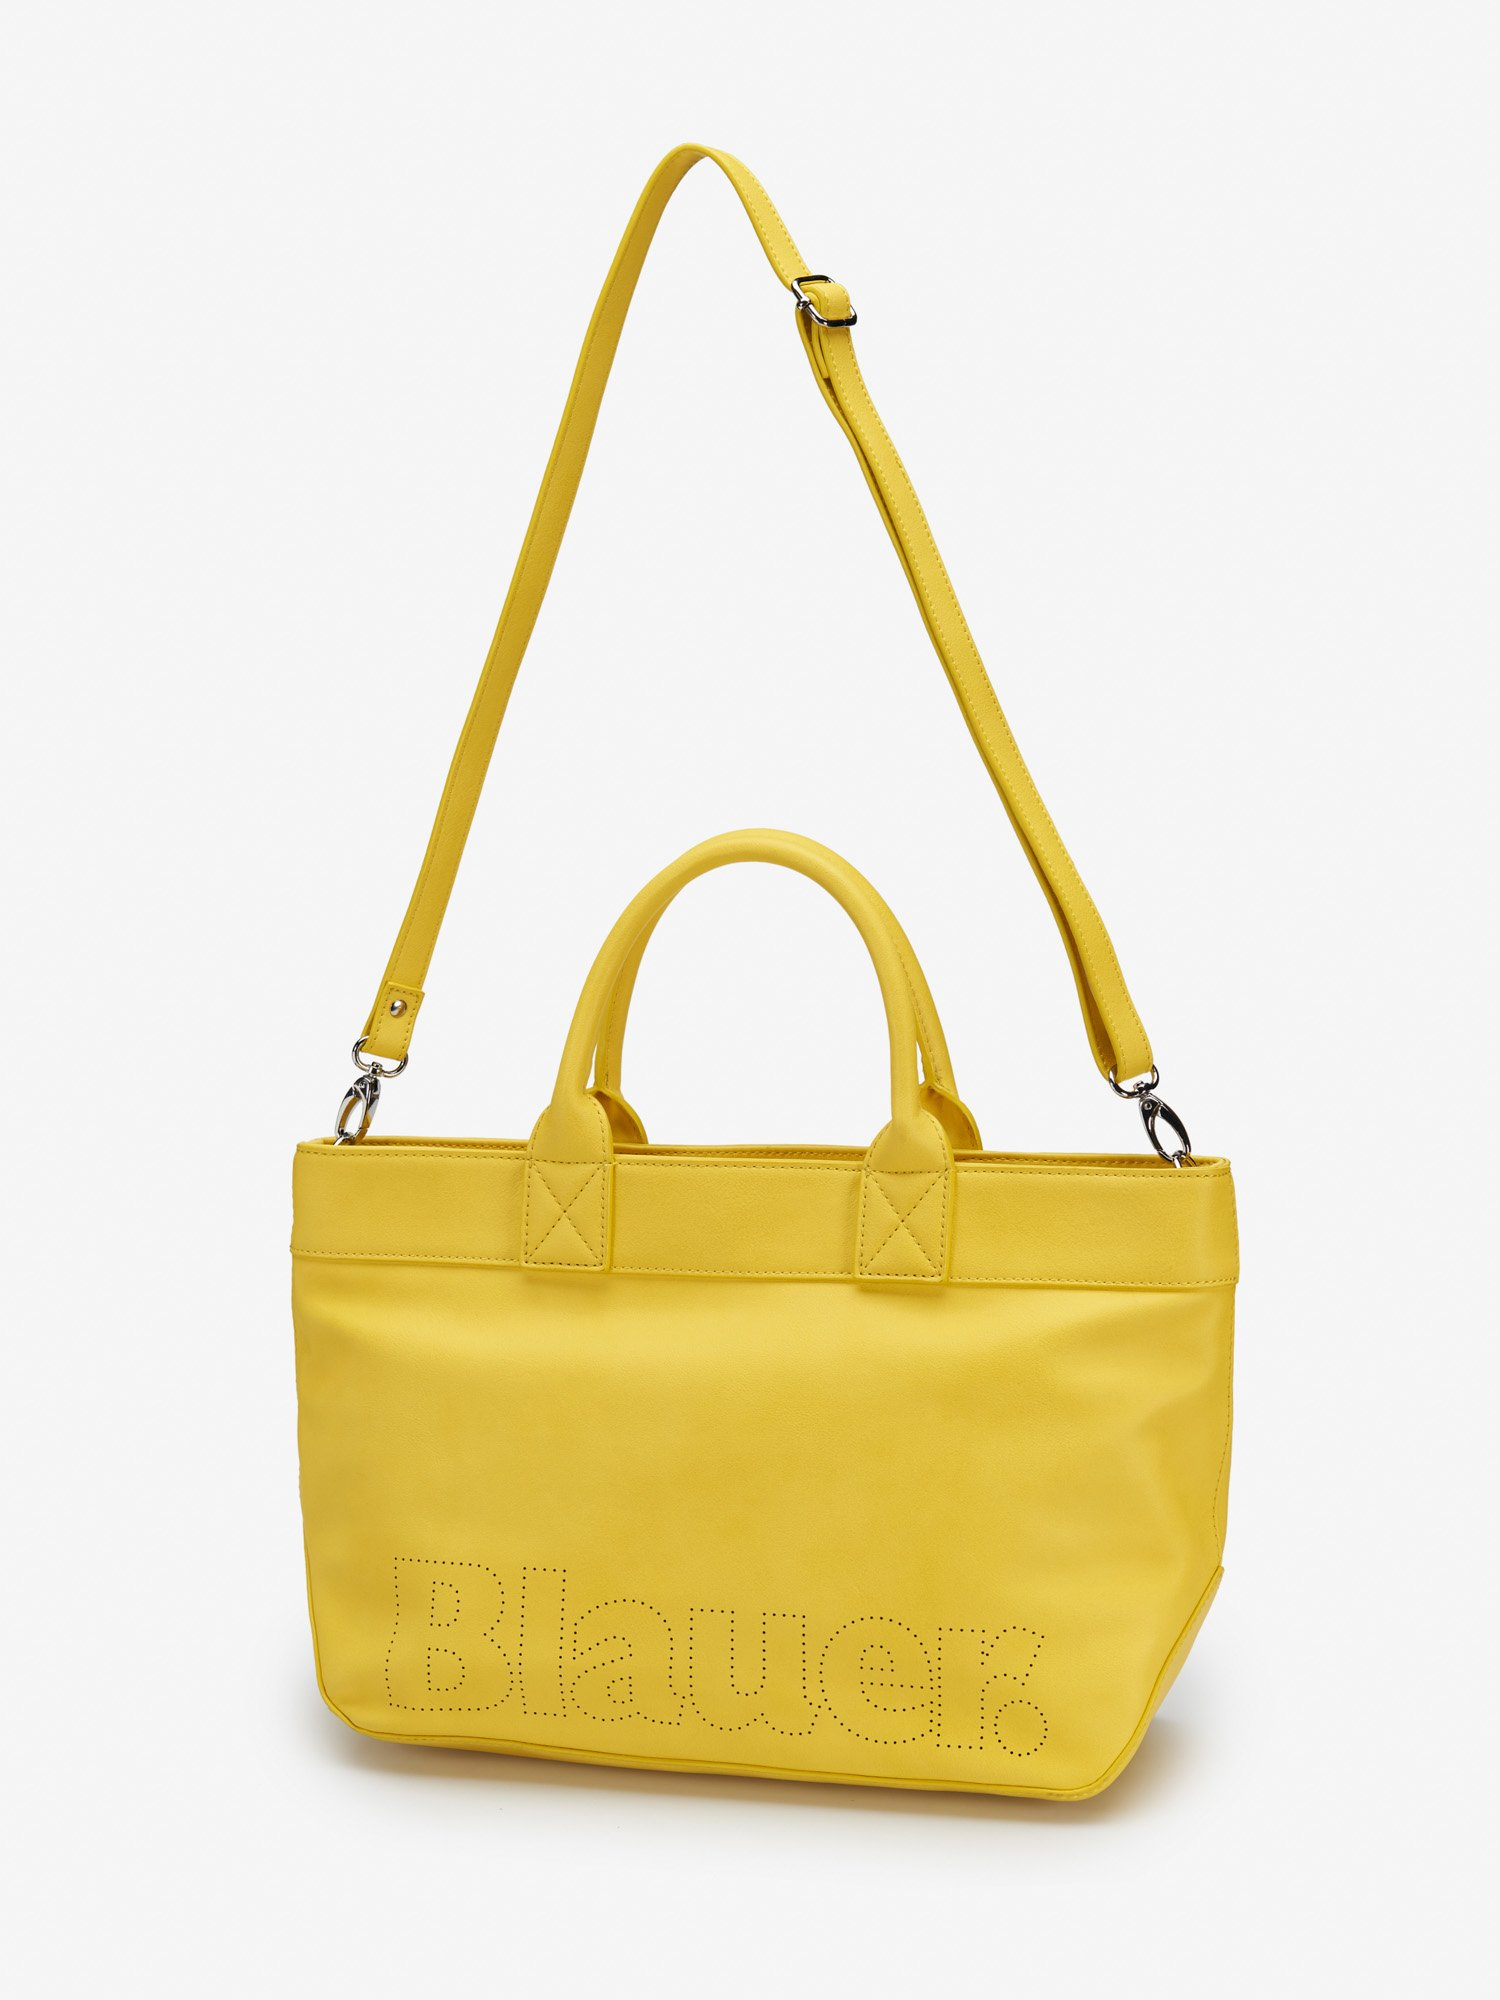 Blauer - SHOPPER LARGE LEATHER TOTE - Mineral Yellow - Blauer